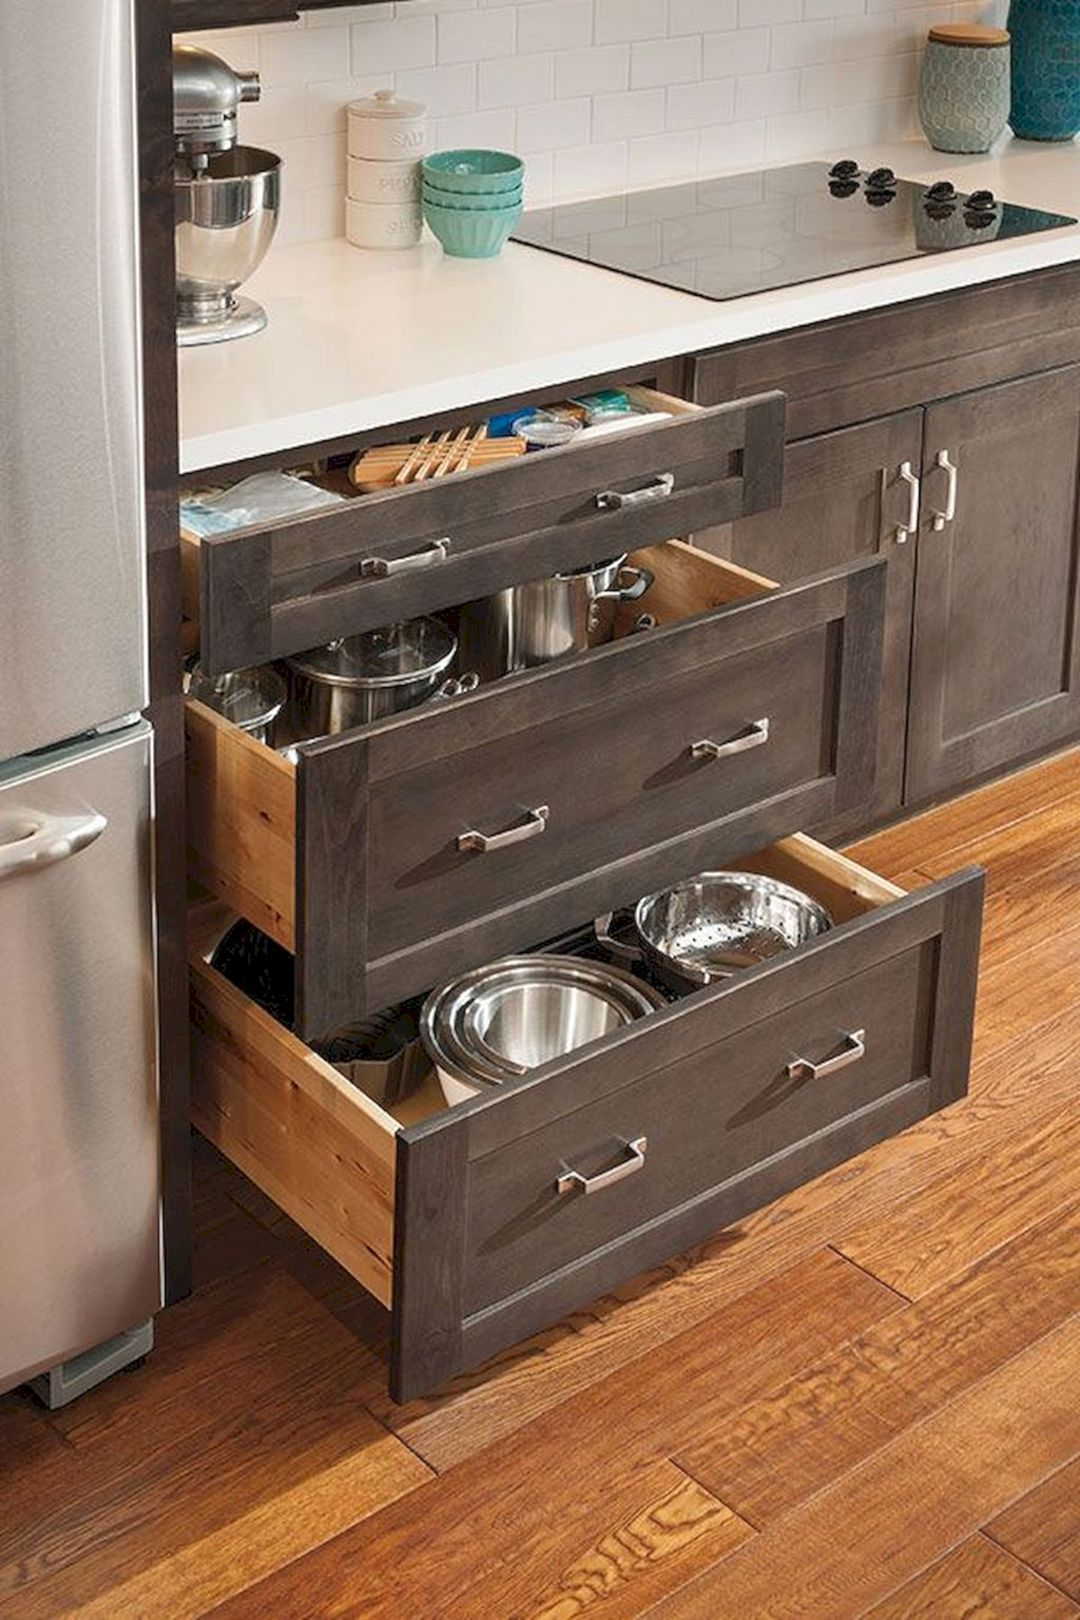 12 Marvelous Diy Kitchen Cabinet Ideas You Have To Know Dexorate Diy Kitchen Storage Refacing Kitchen Cabinets Kitchen Storage